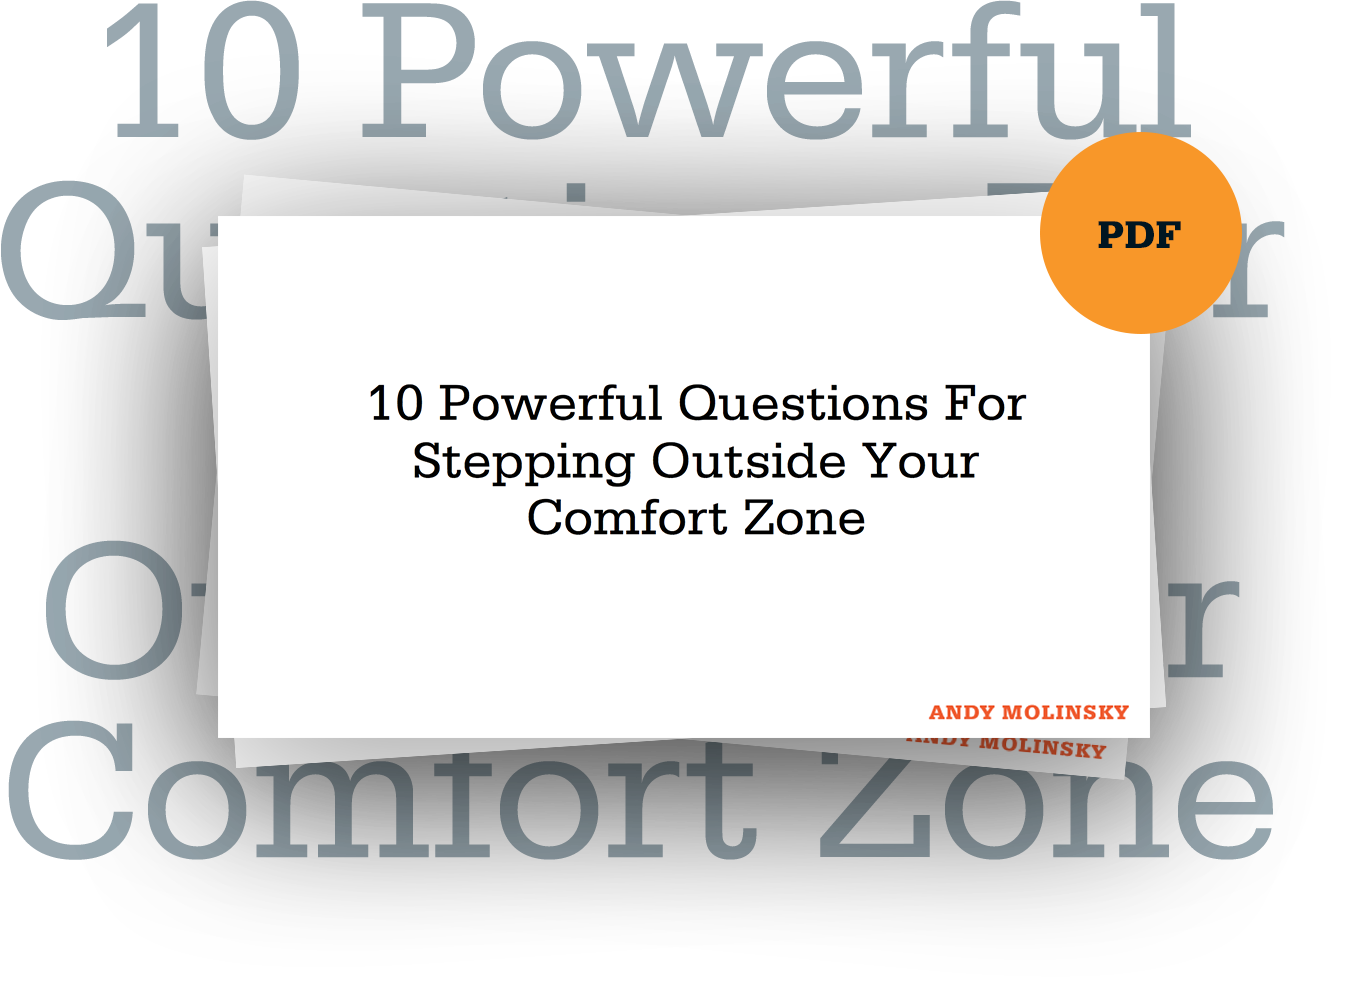 10 powerful questions for stepping outside your comfort zone andy